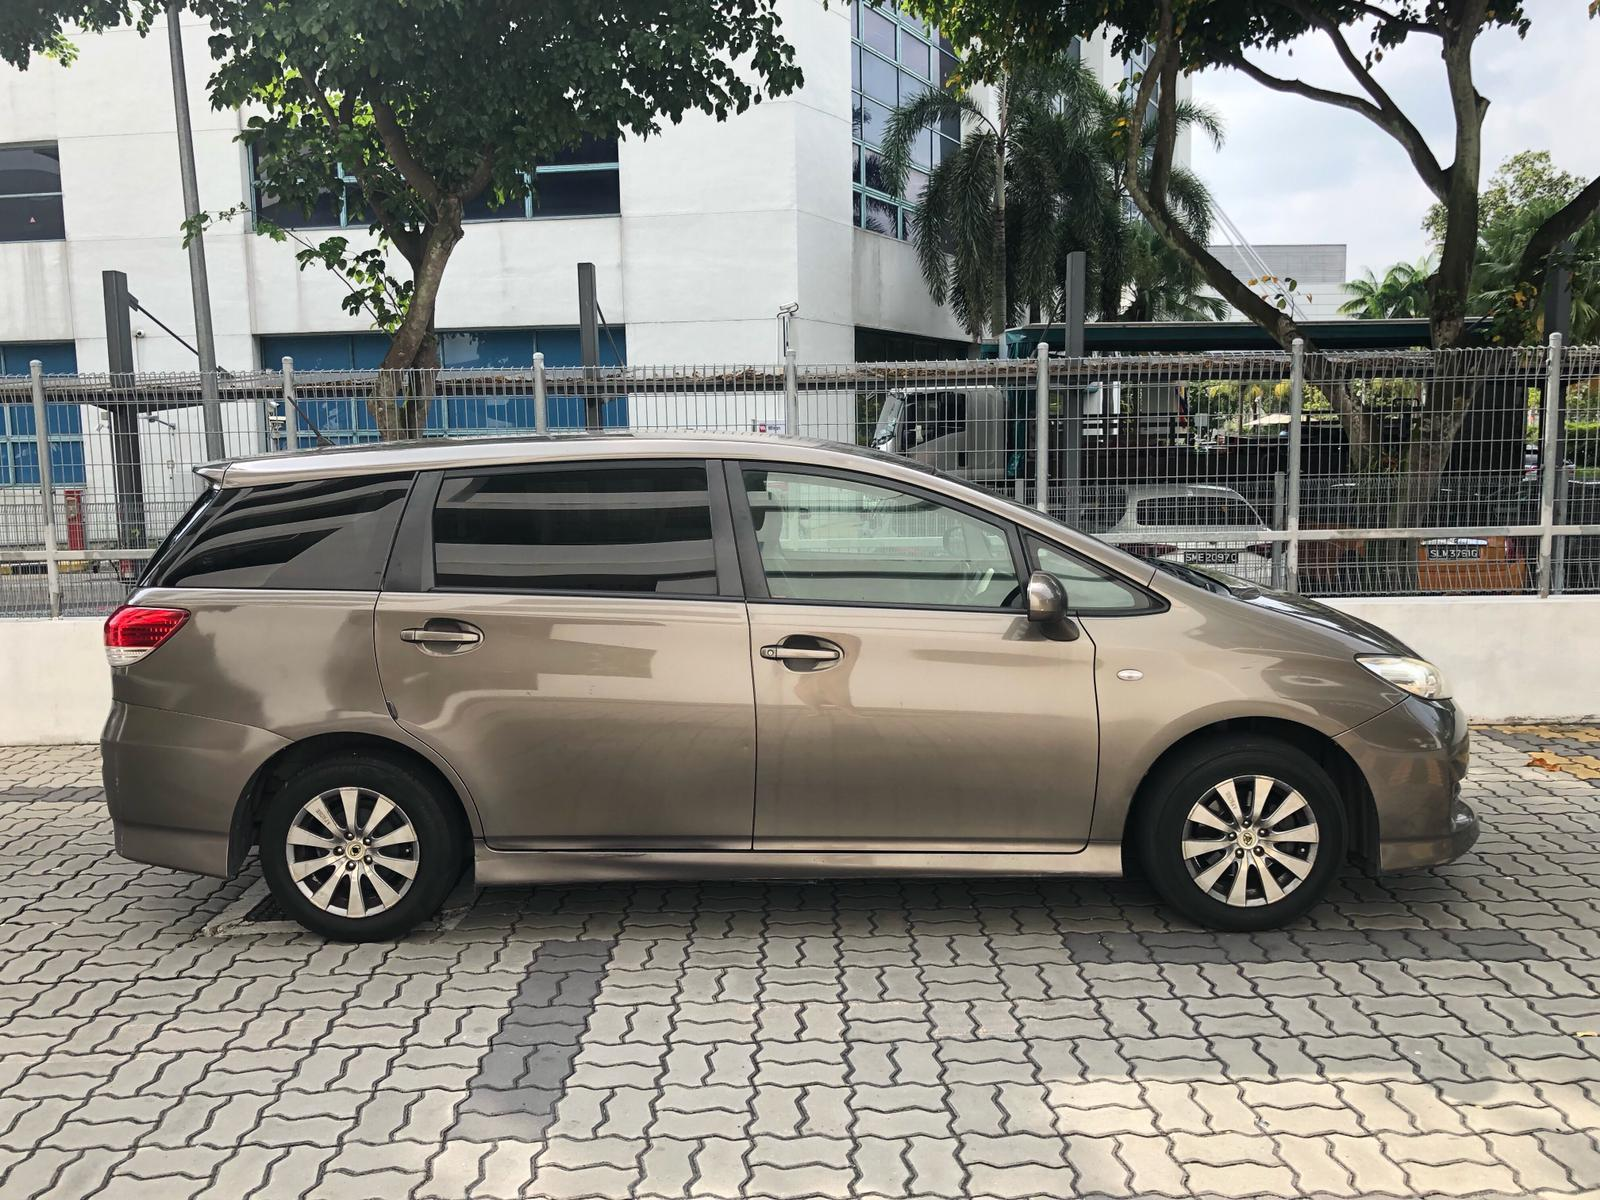 TOYOTA WISH*GOOD CONDITION&SAVE PETROL* mpv 7seater Altis Car AxioCamry HondaStream Civic Cars Hyundai Avante Grab Rental Gojek Or Personal Use Low price and Cheap